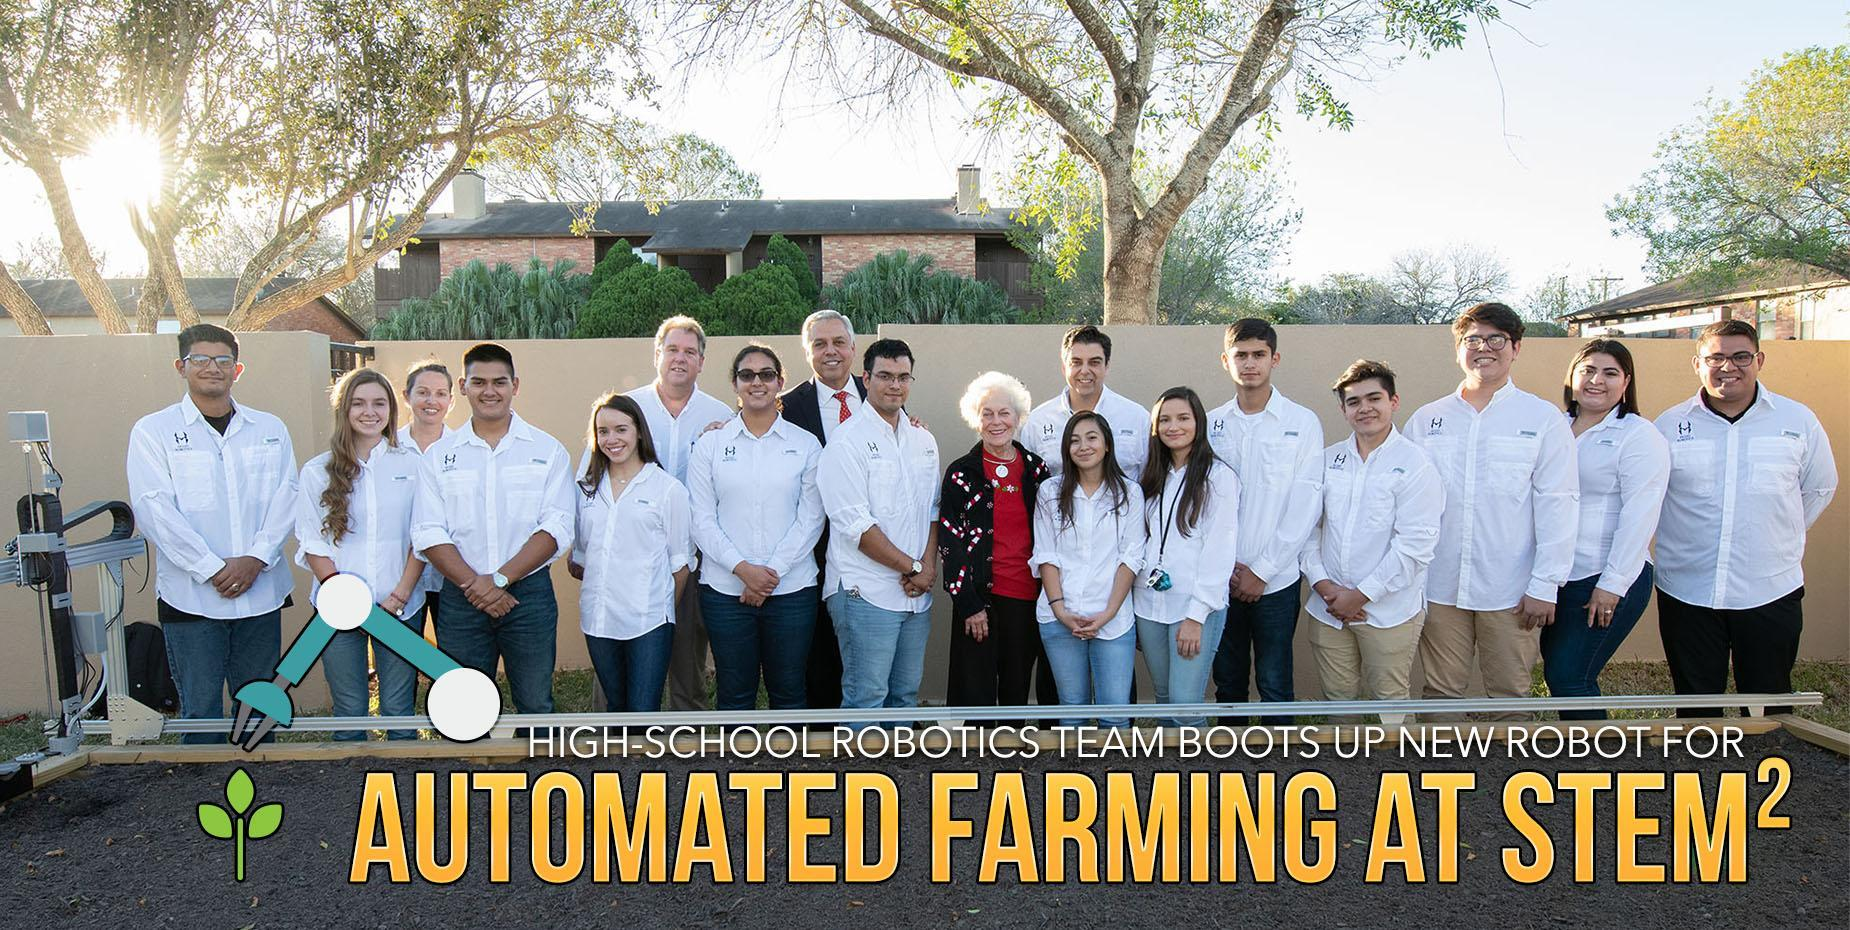 High-school robotics team boots up new robot for automated farming at STEM²